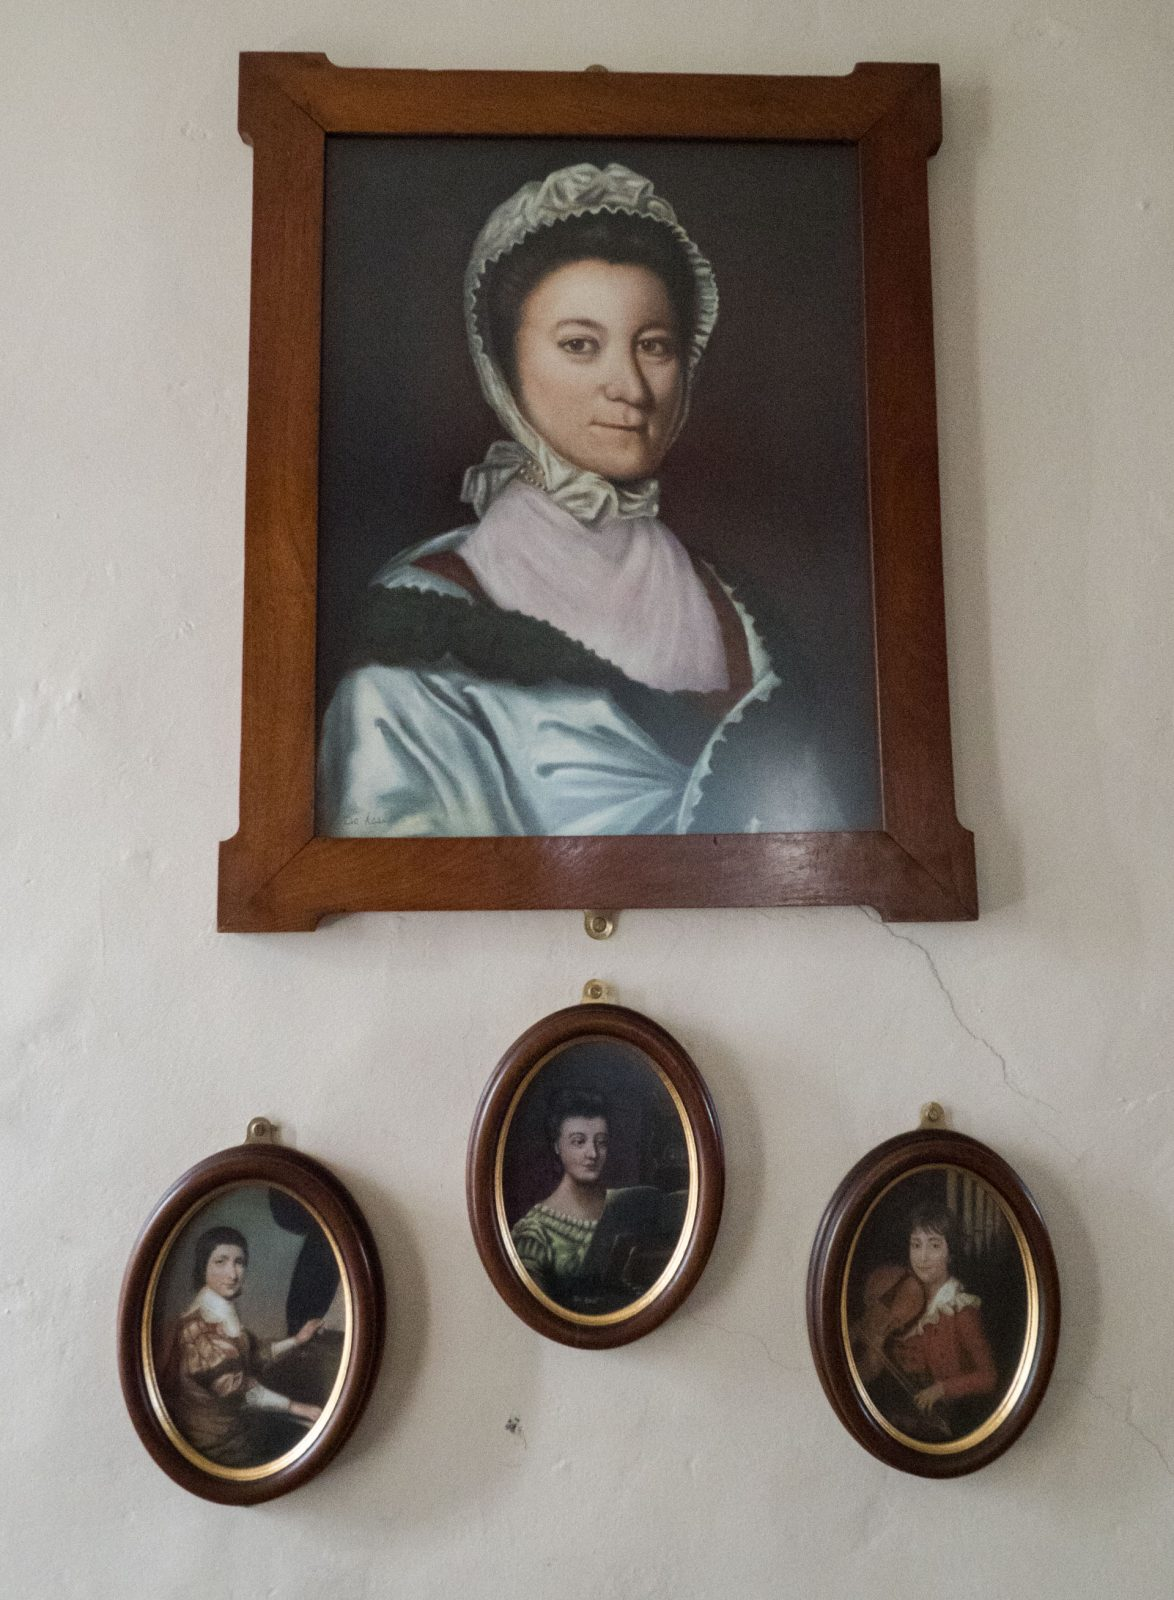 Charles Wesley's family